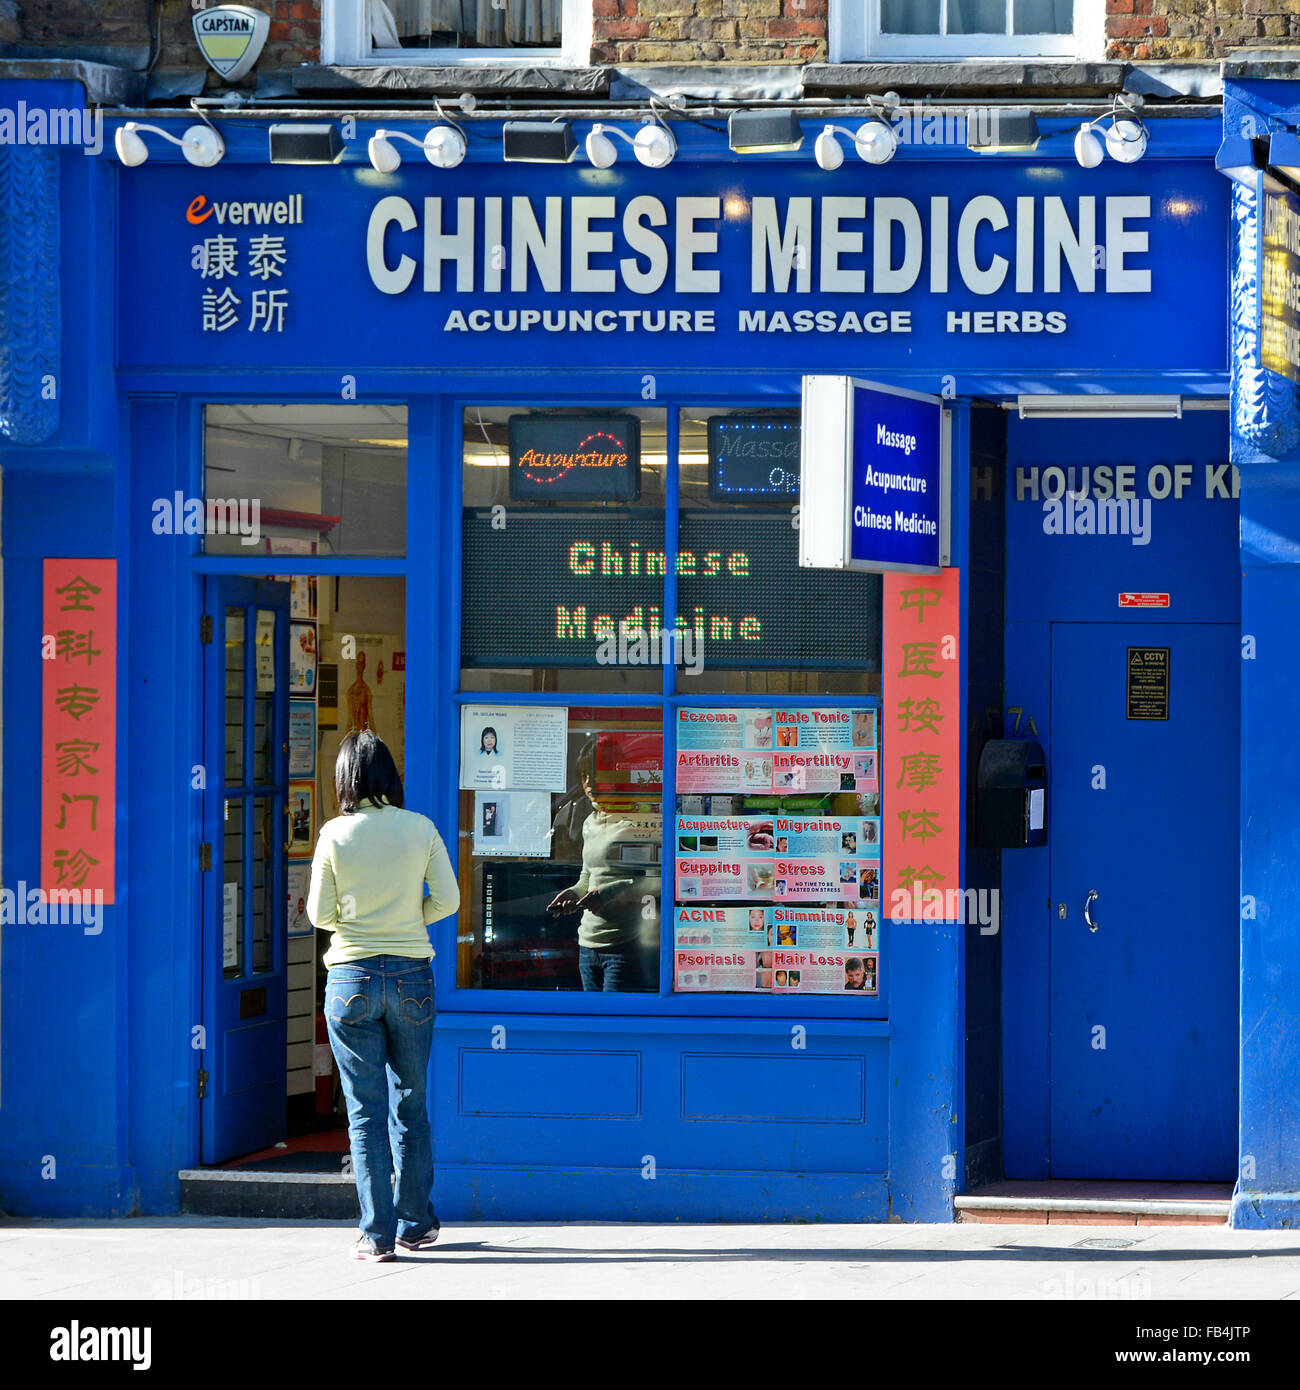 Shop front for Chinese Medicine business in London China Town District England UK - Stock Image